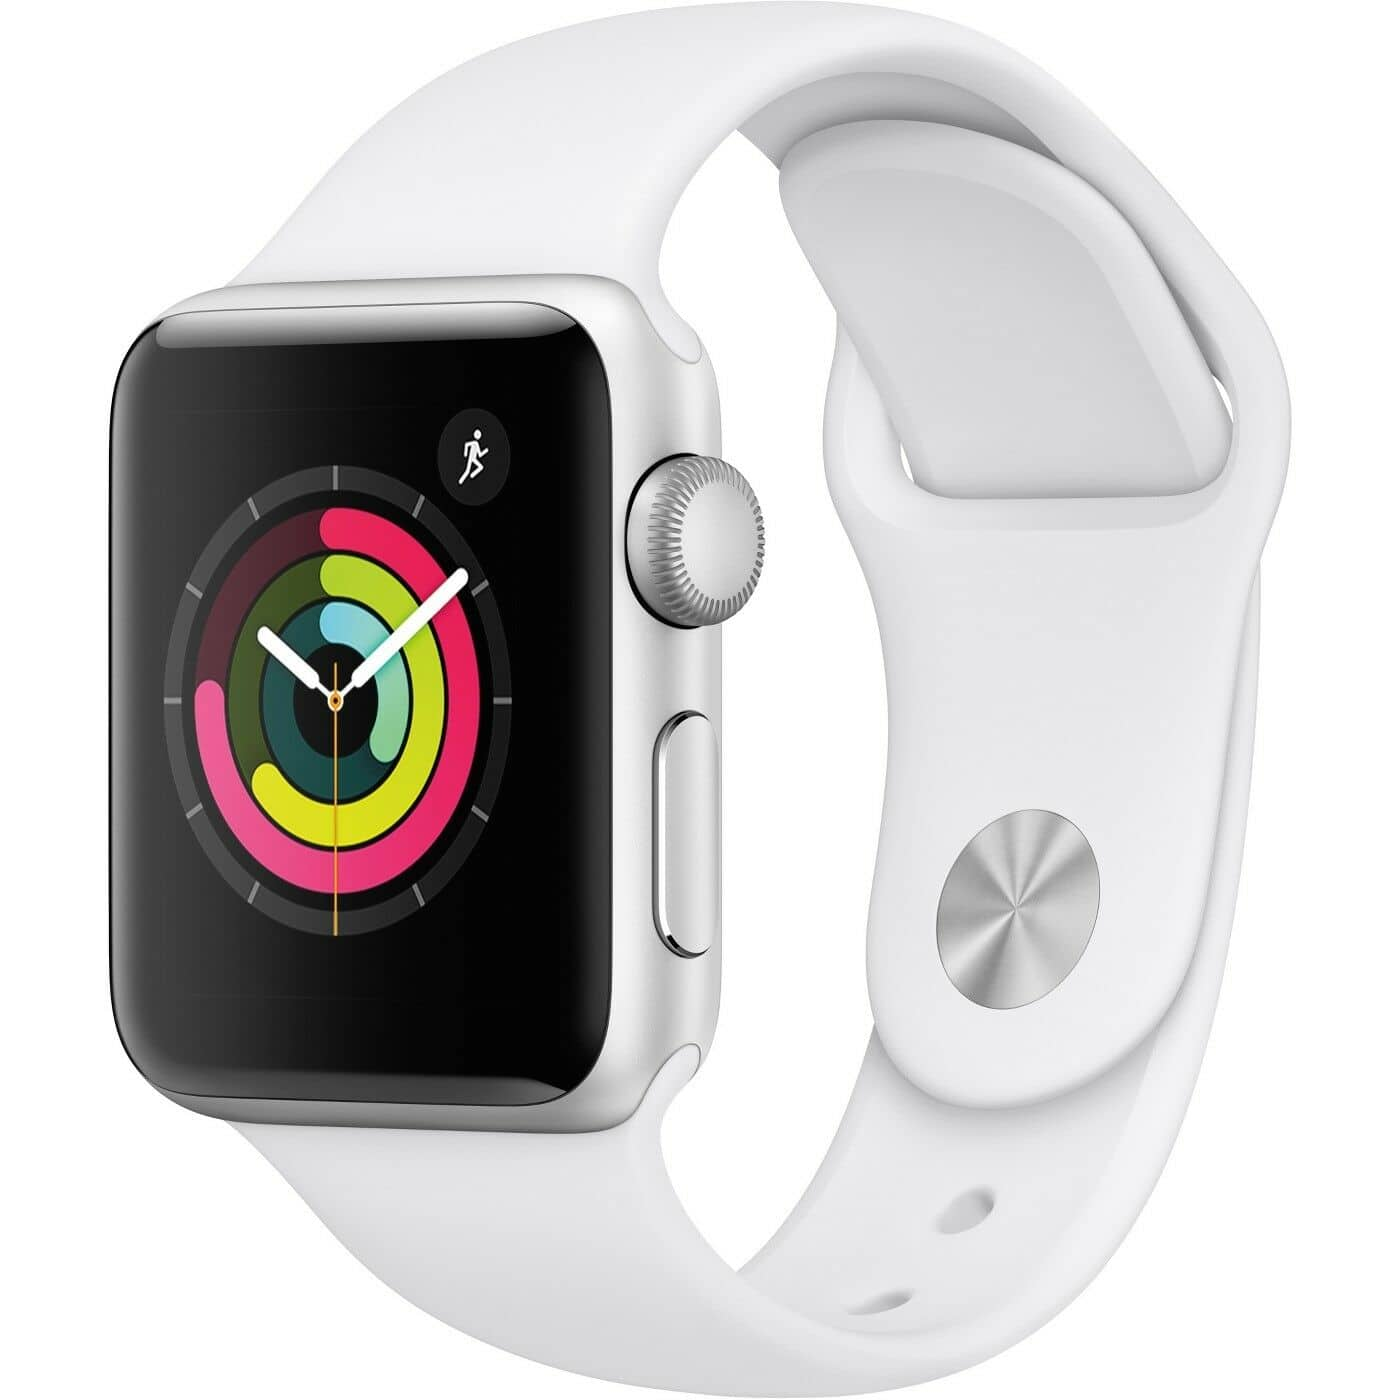 Apple Watch Series 3 38mm Silver Aluminum - White Sport Band (Refurbished) - $152 + Free Shipping